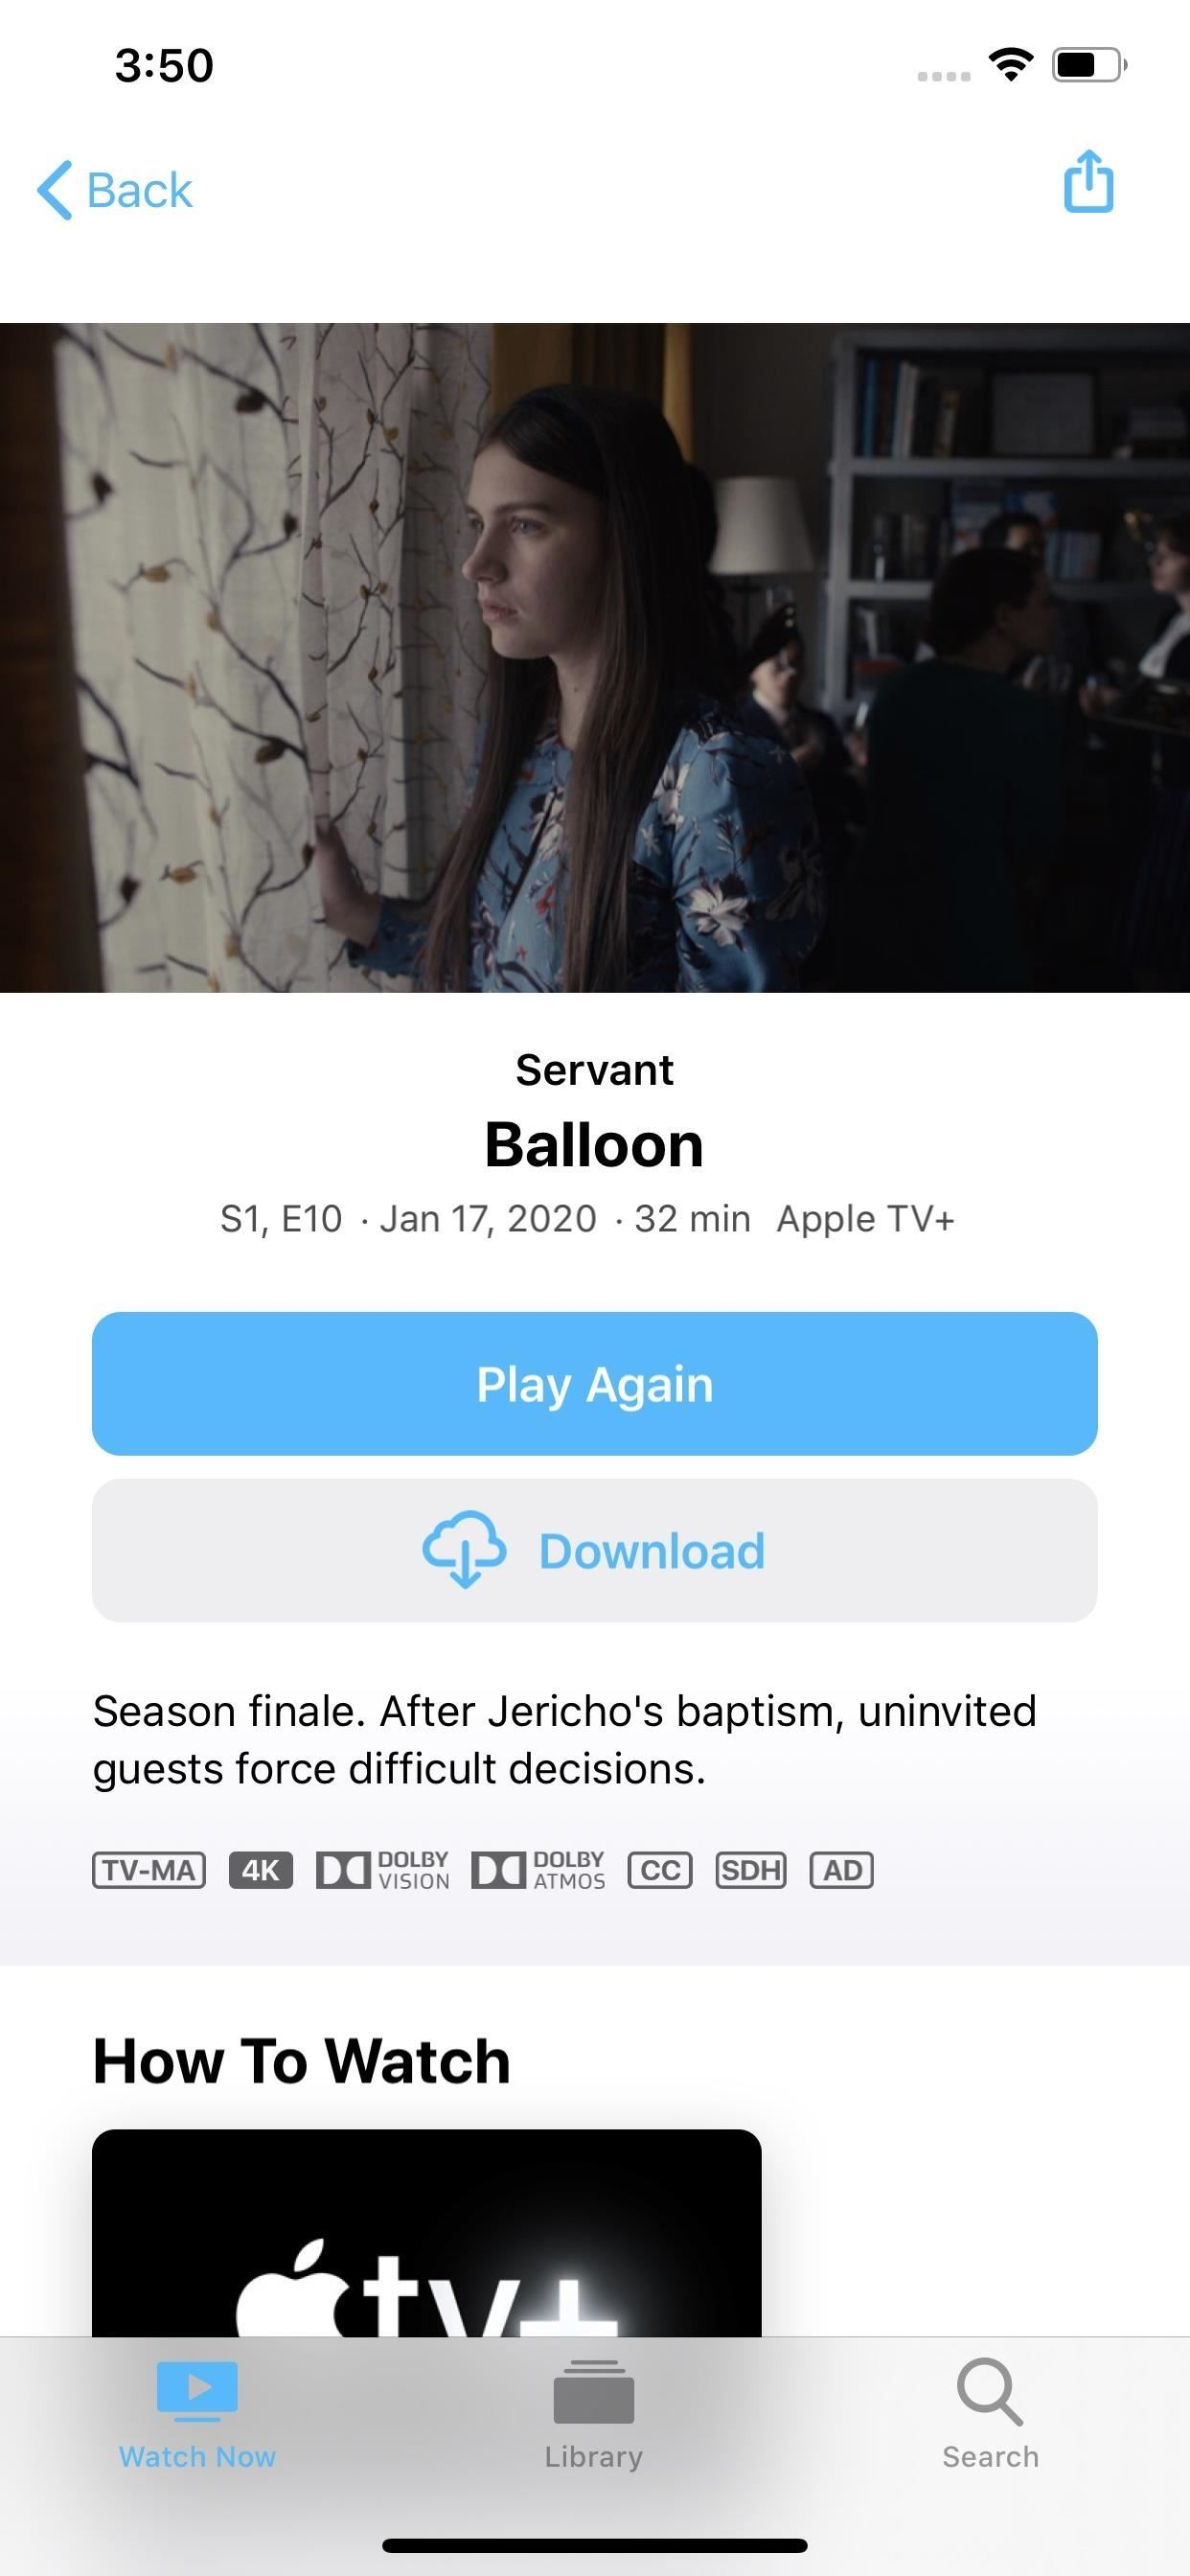 24 new features and changes for iPhone in iOS 13.4